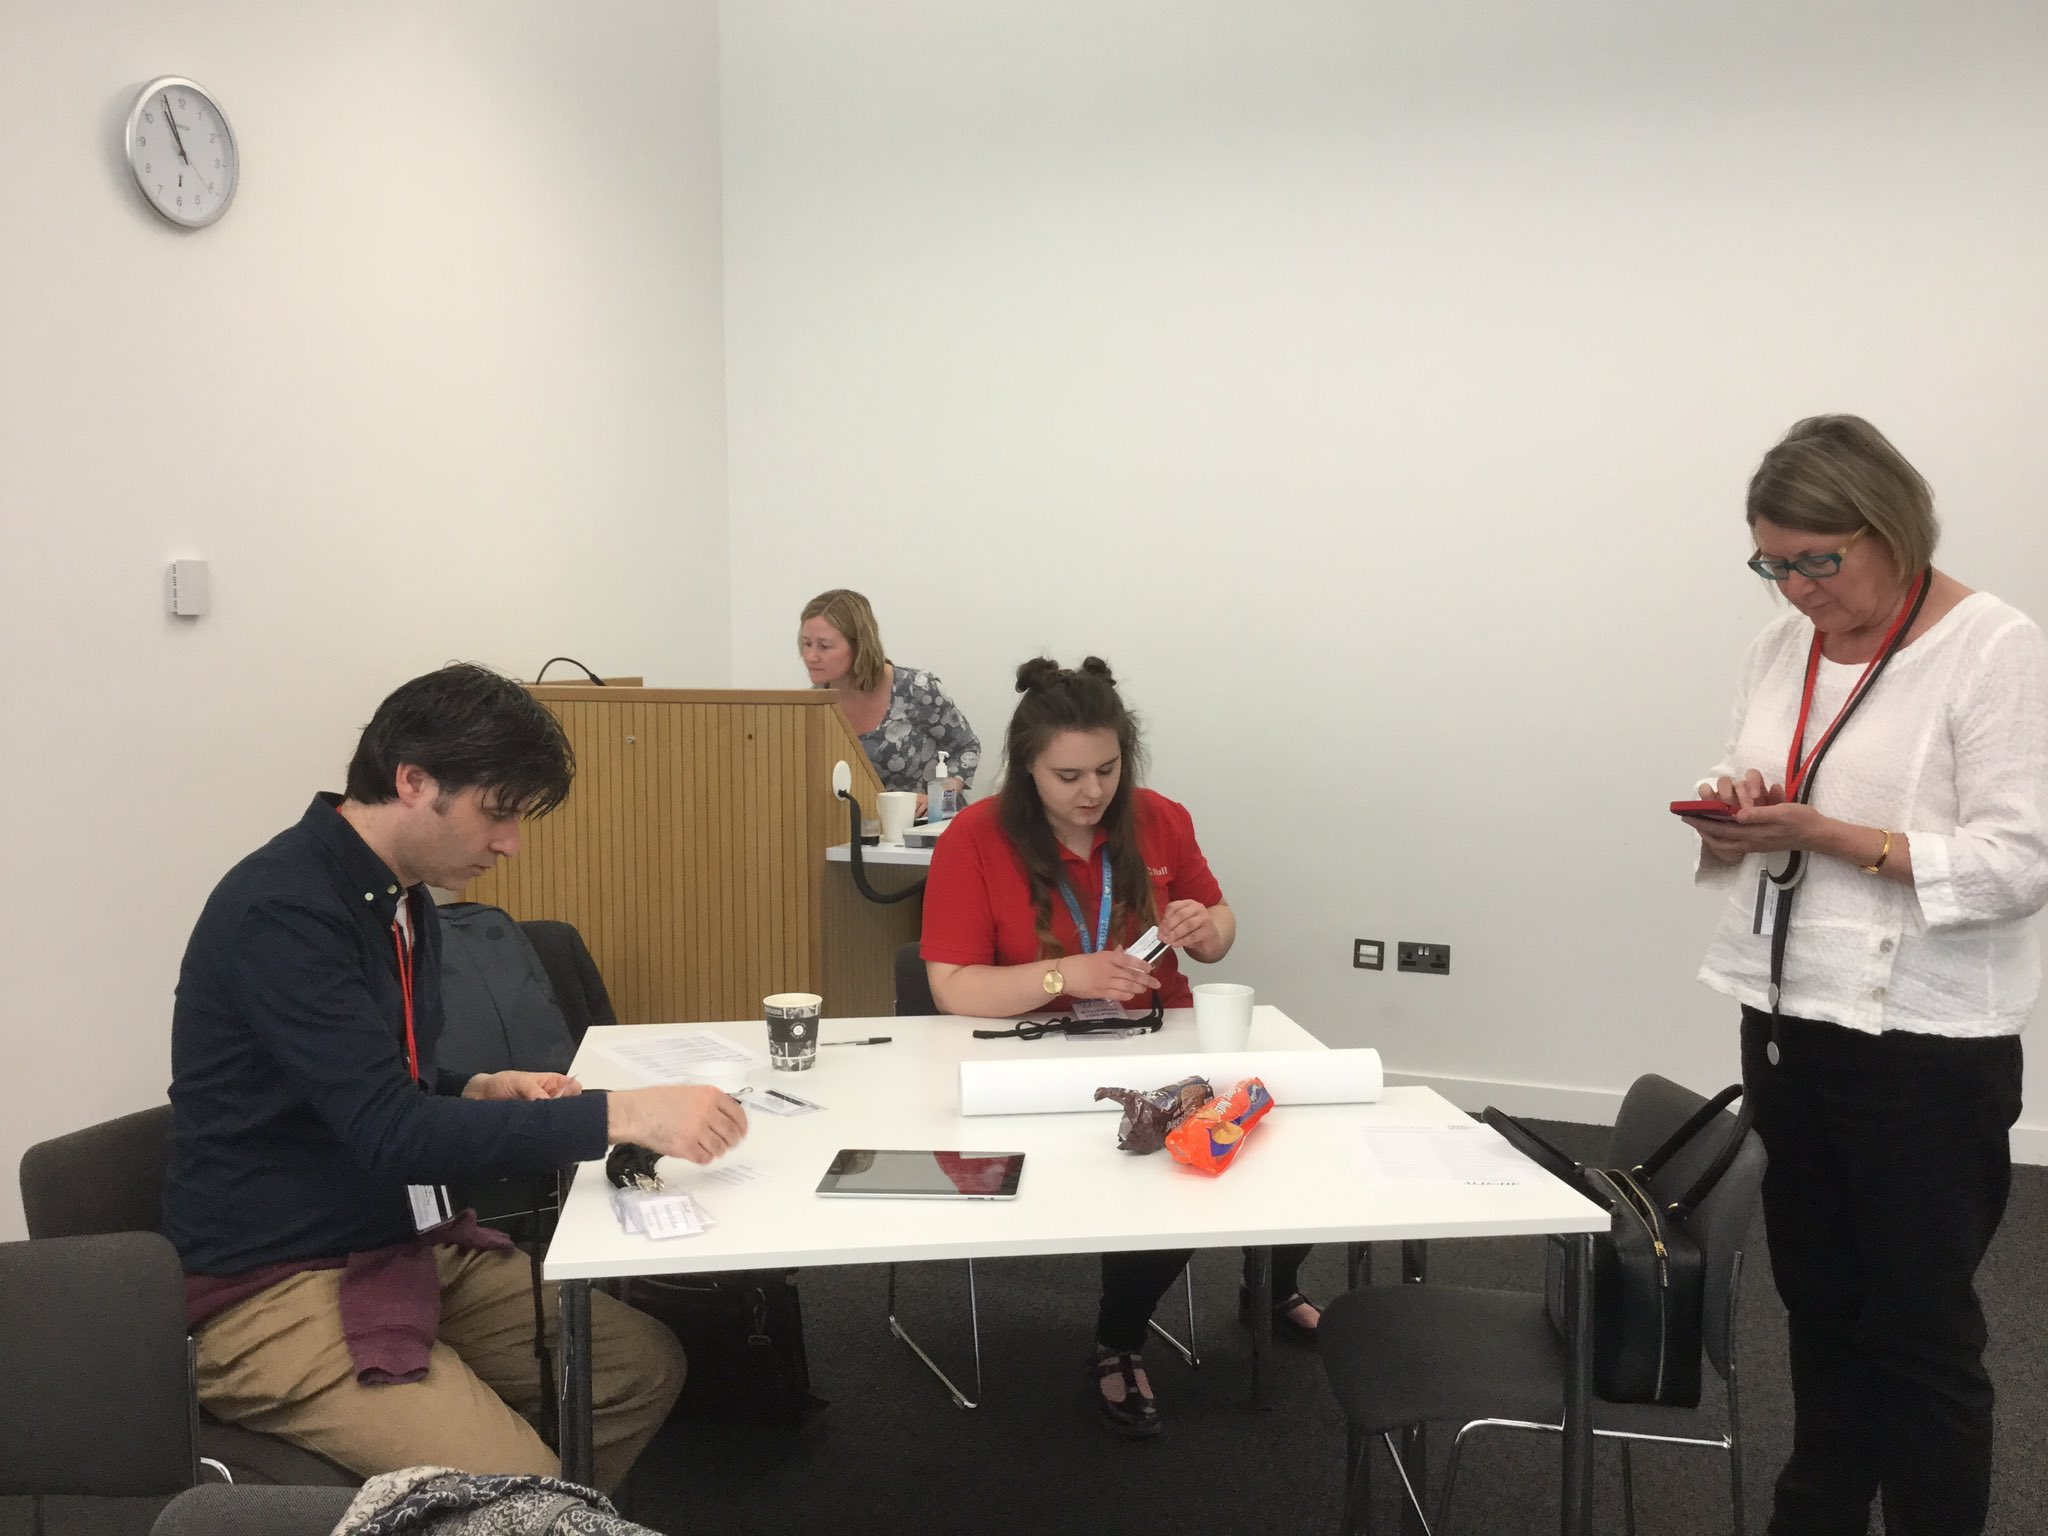 Preparing lanyards for #aldcon @UniOfHull fuelled by biscuits, as with all great endeavours @estebanrooney @DebbieHolley1 https://t.co/GdFa6Zpcsq